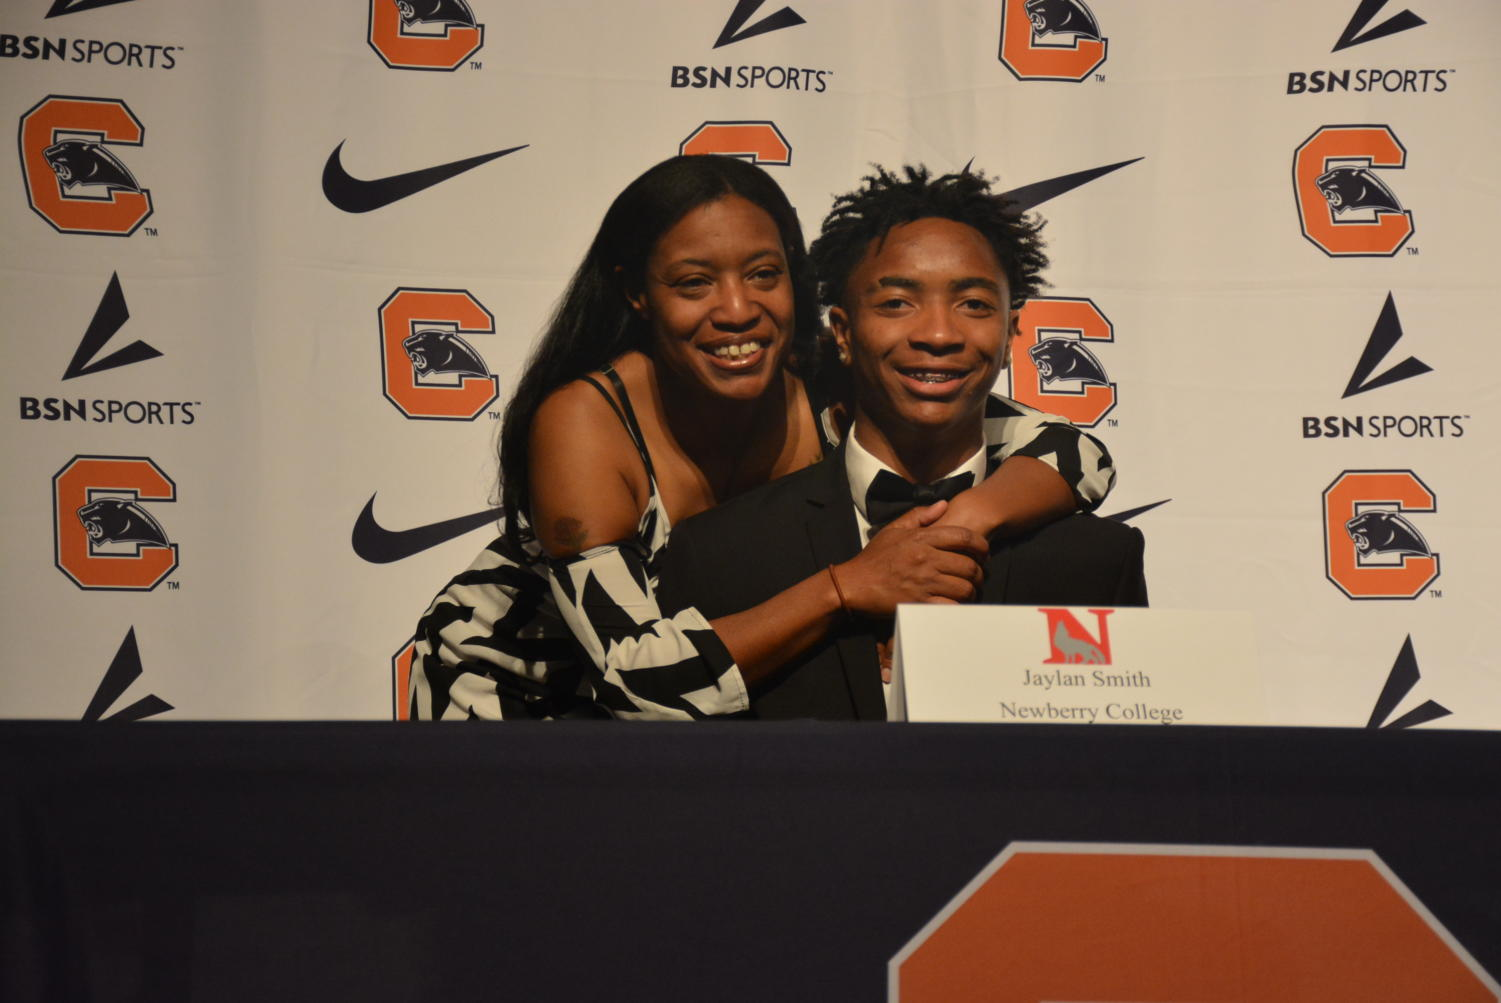 Smith+shares+a+photo+with+his+mom.+